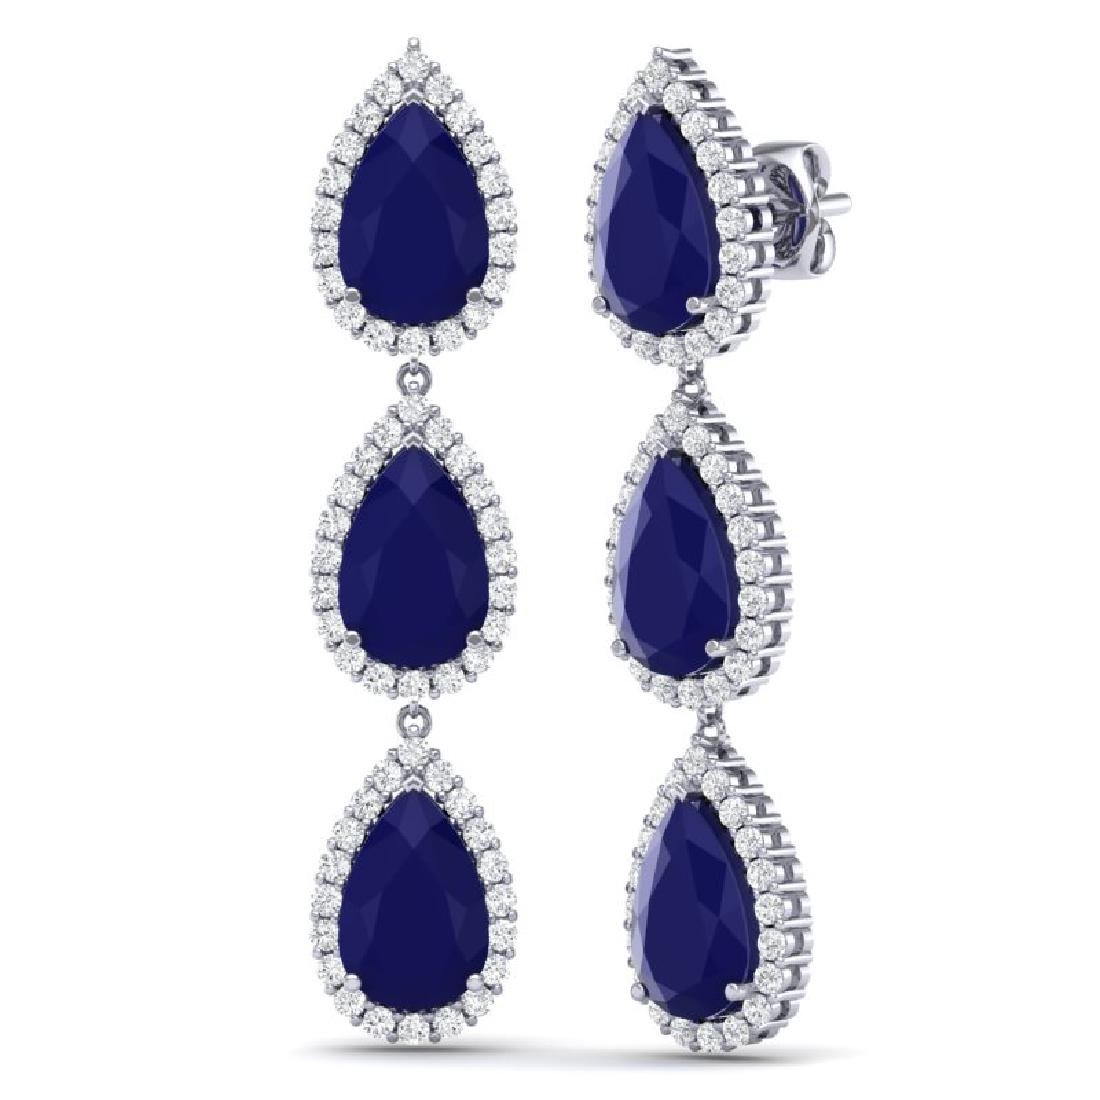 27.06 CTW Royalty Sapphire & VS Diamond Earrings 18K - 3